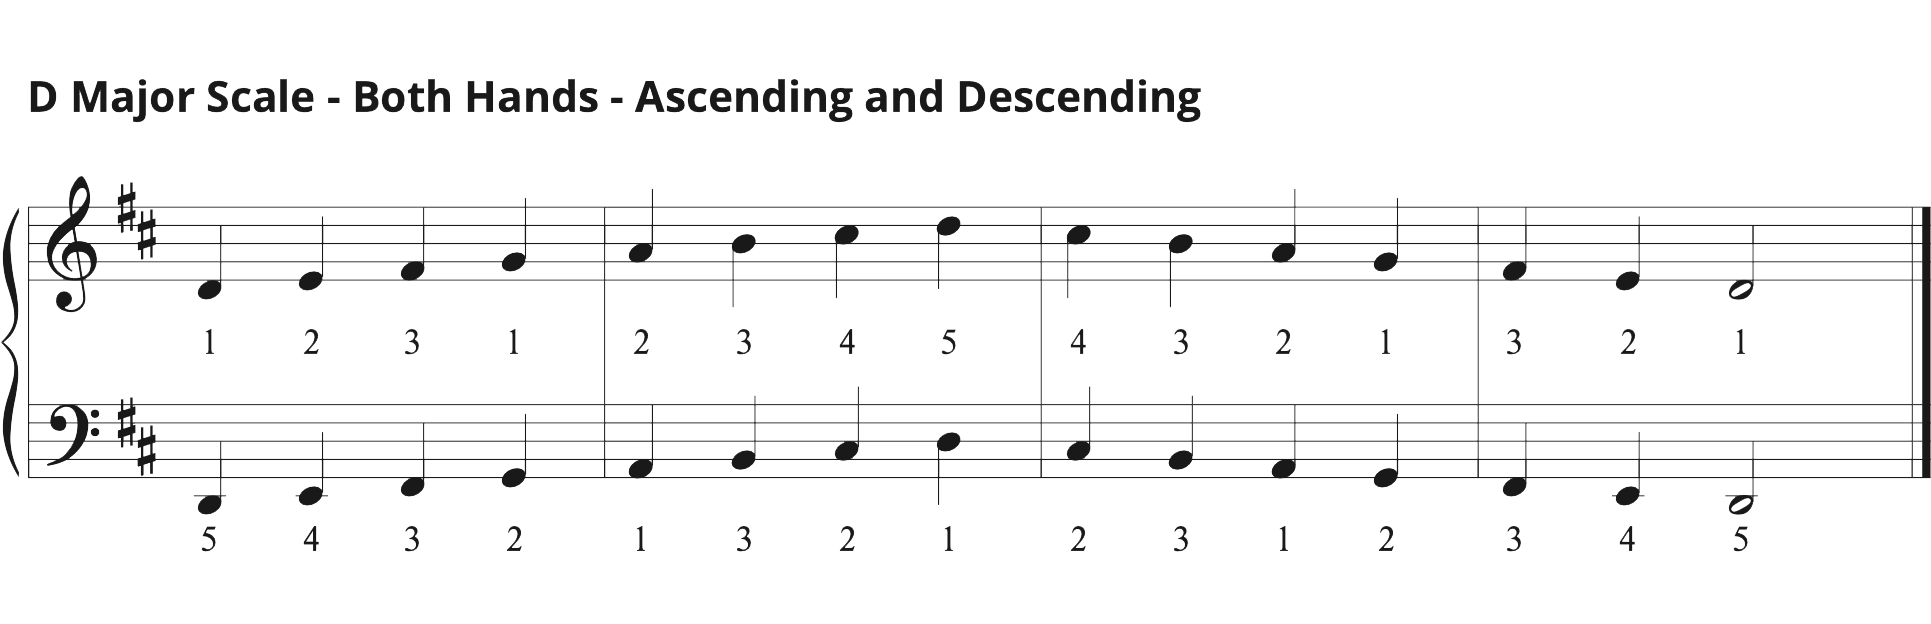 D Major scale both hands, ascending and descending on grand staff, one octave with fingering in quarter notes.